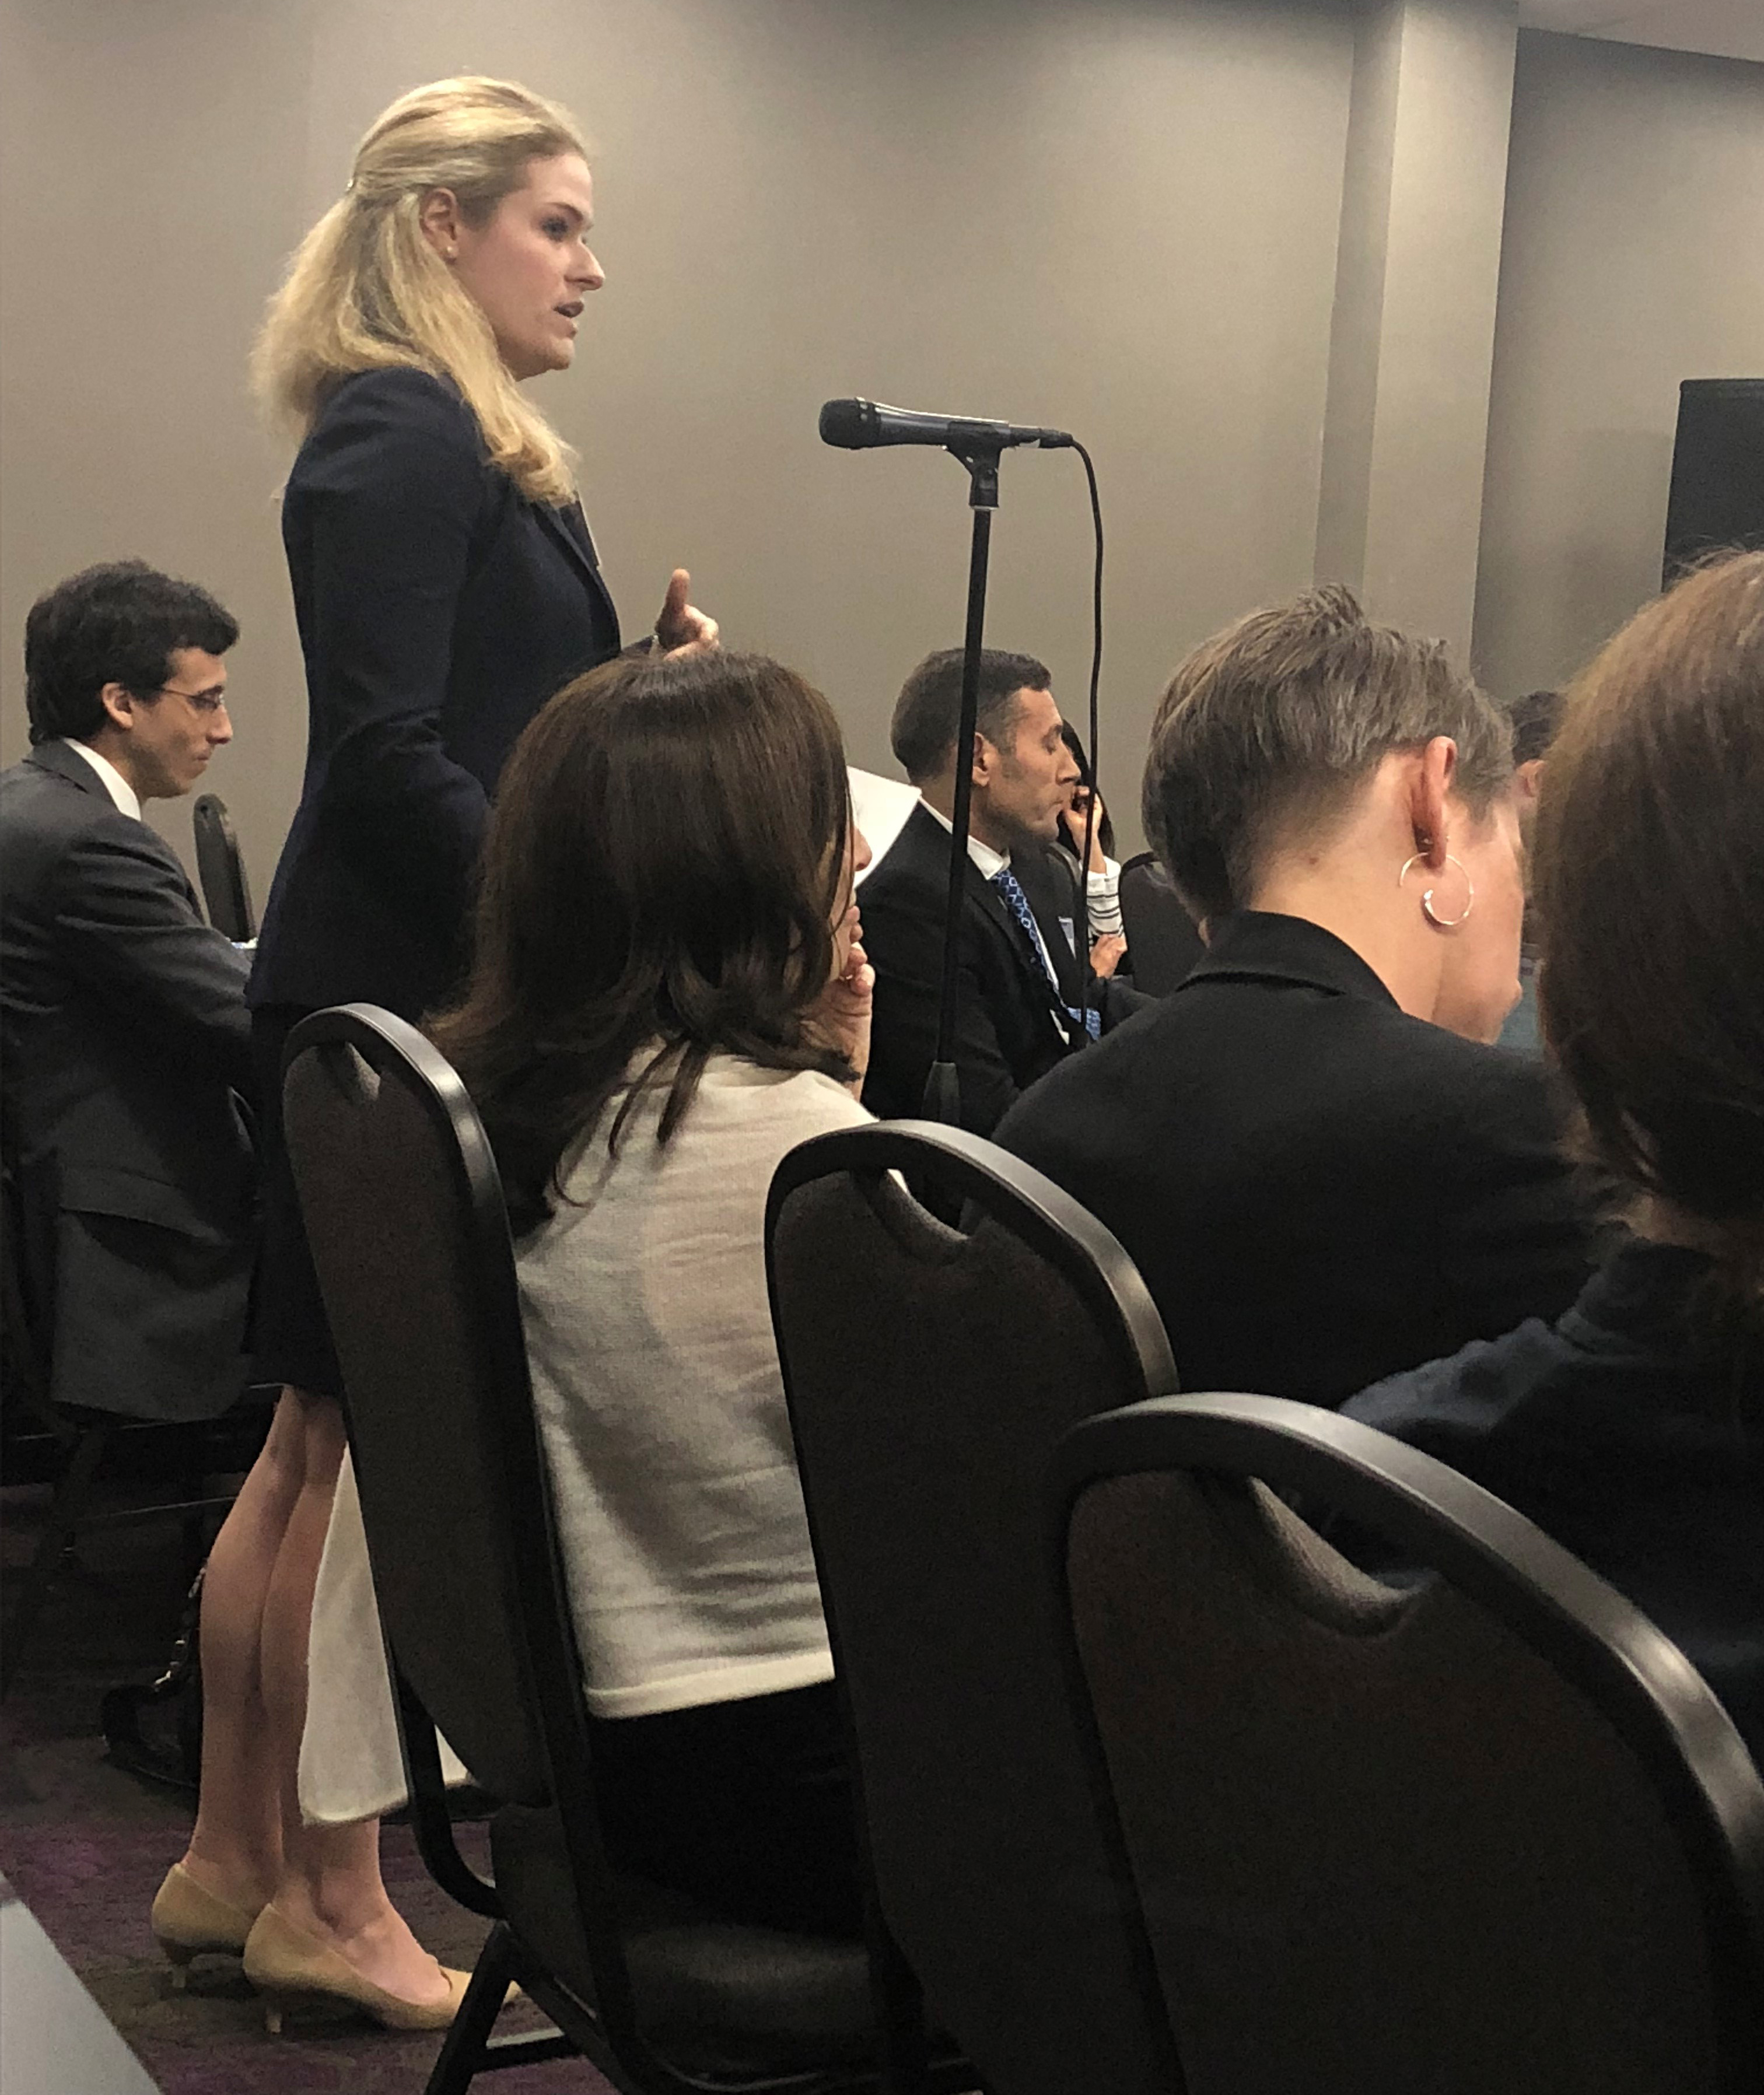 FDA Public Mtg, Lydia Holmes, wearing a dark business suit, stands in crowded conference room, talking into a standing microphone